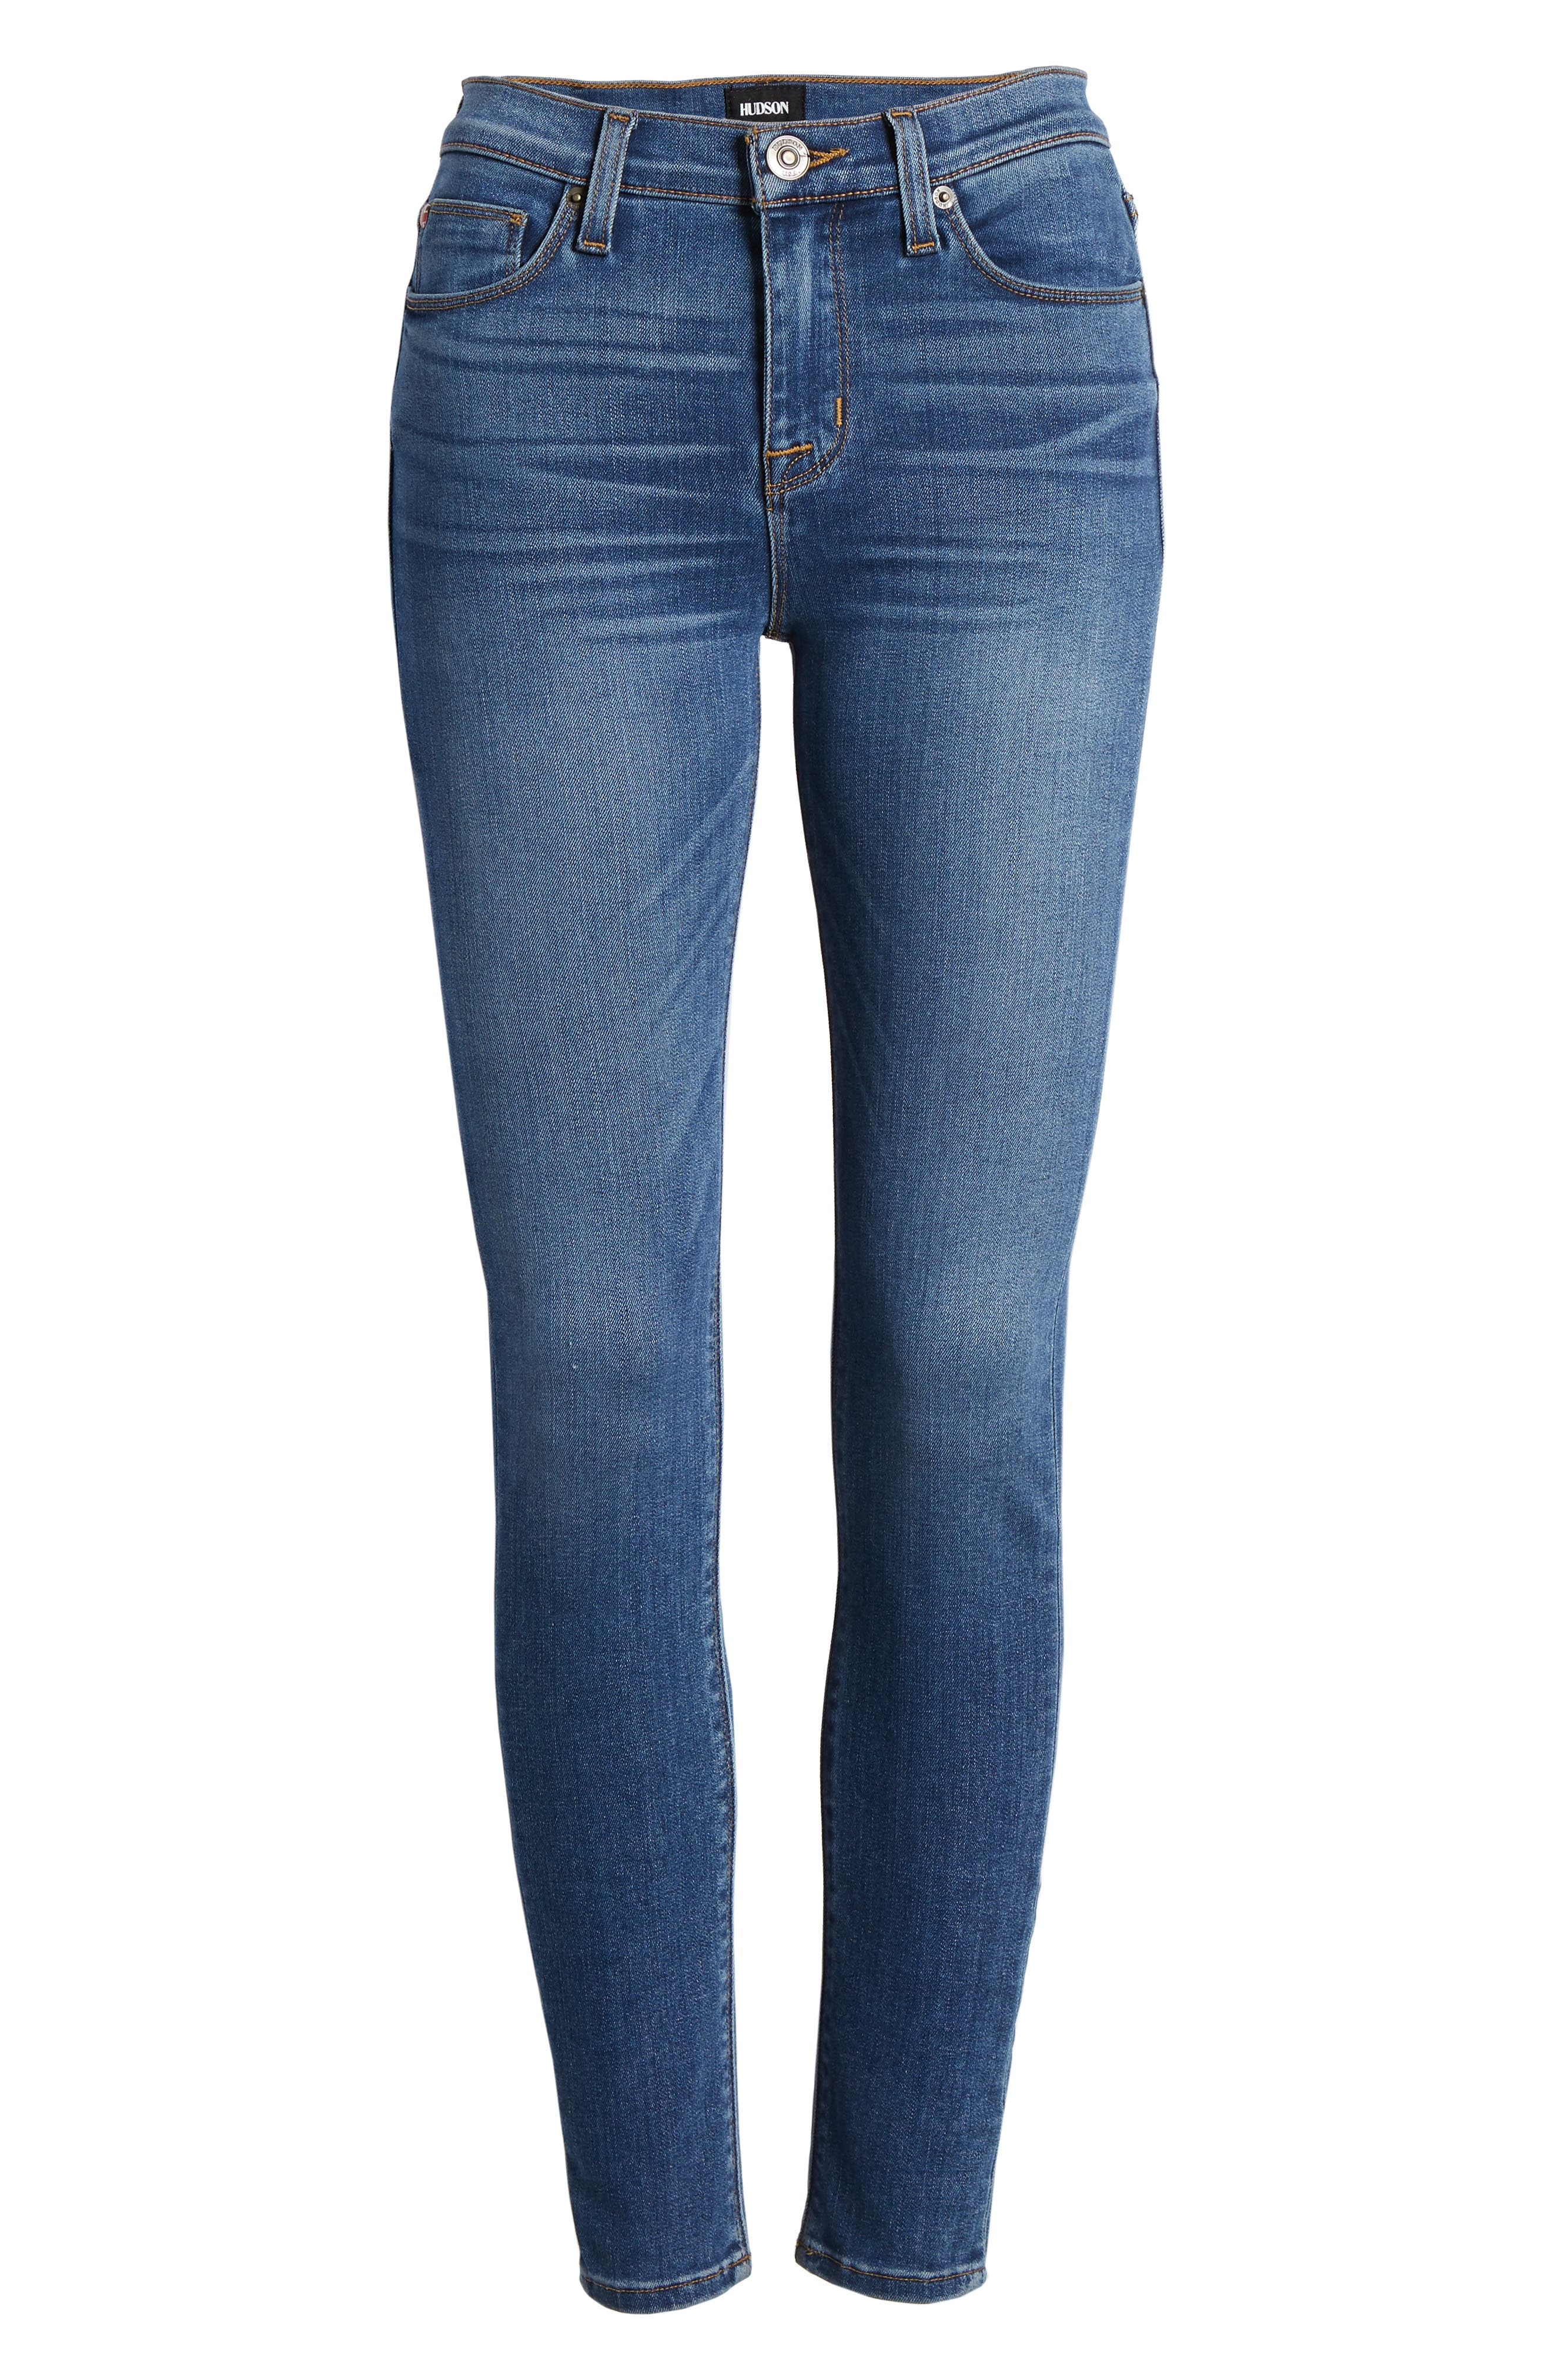 'Nico' Ankle Skinny Jeans,                             Alternate thumbnail 38, color,